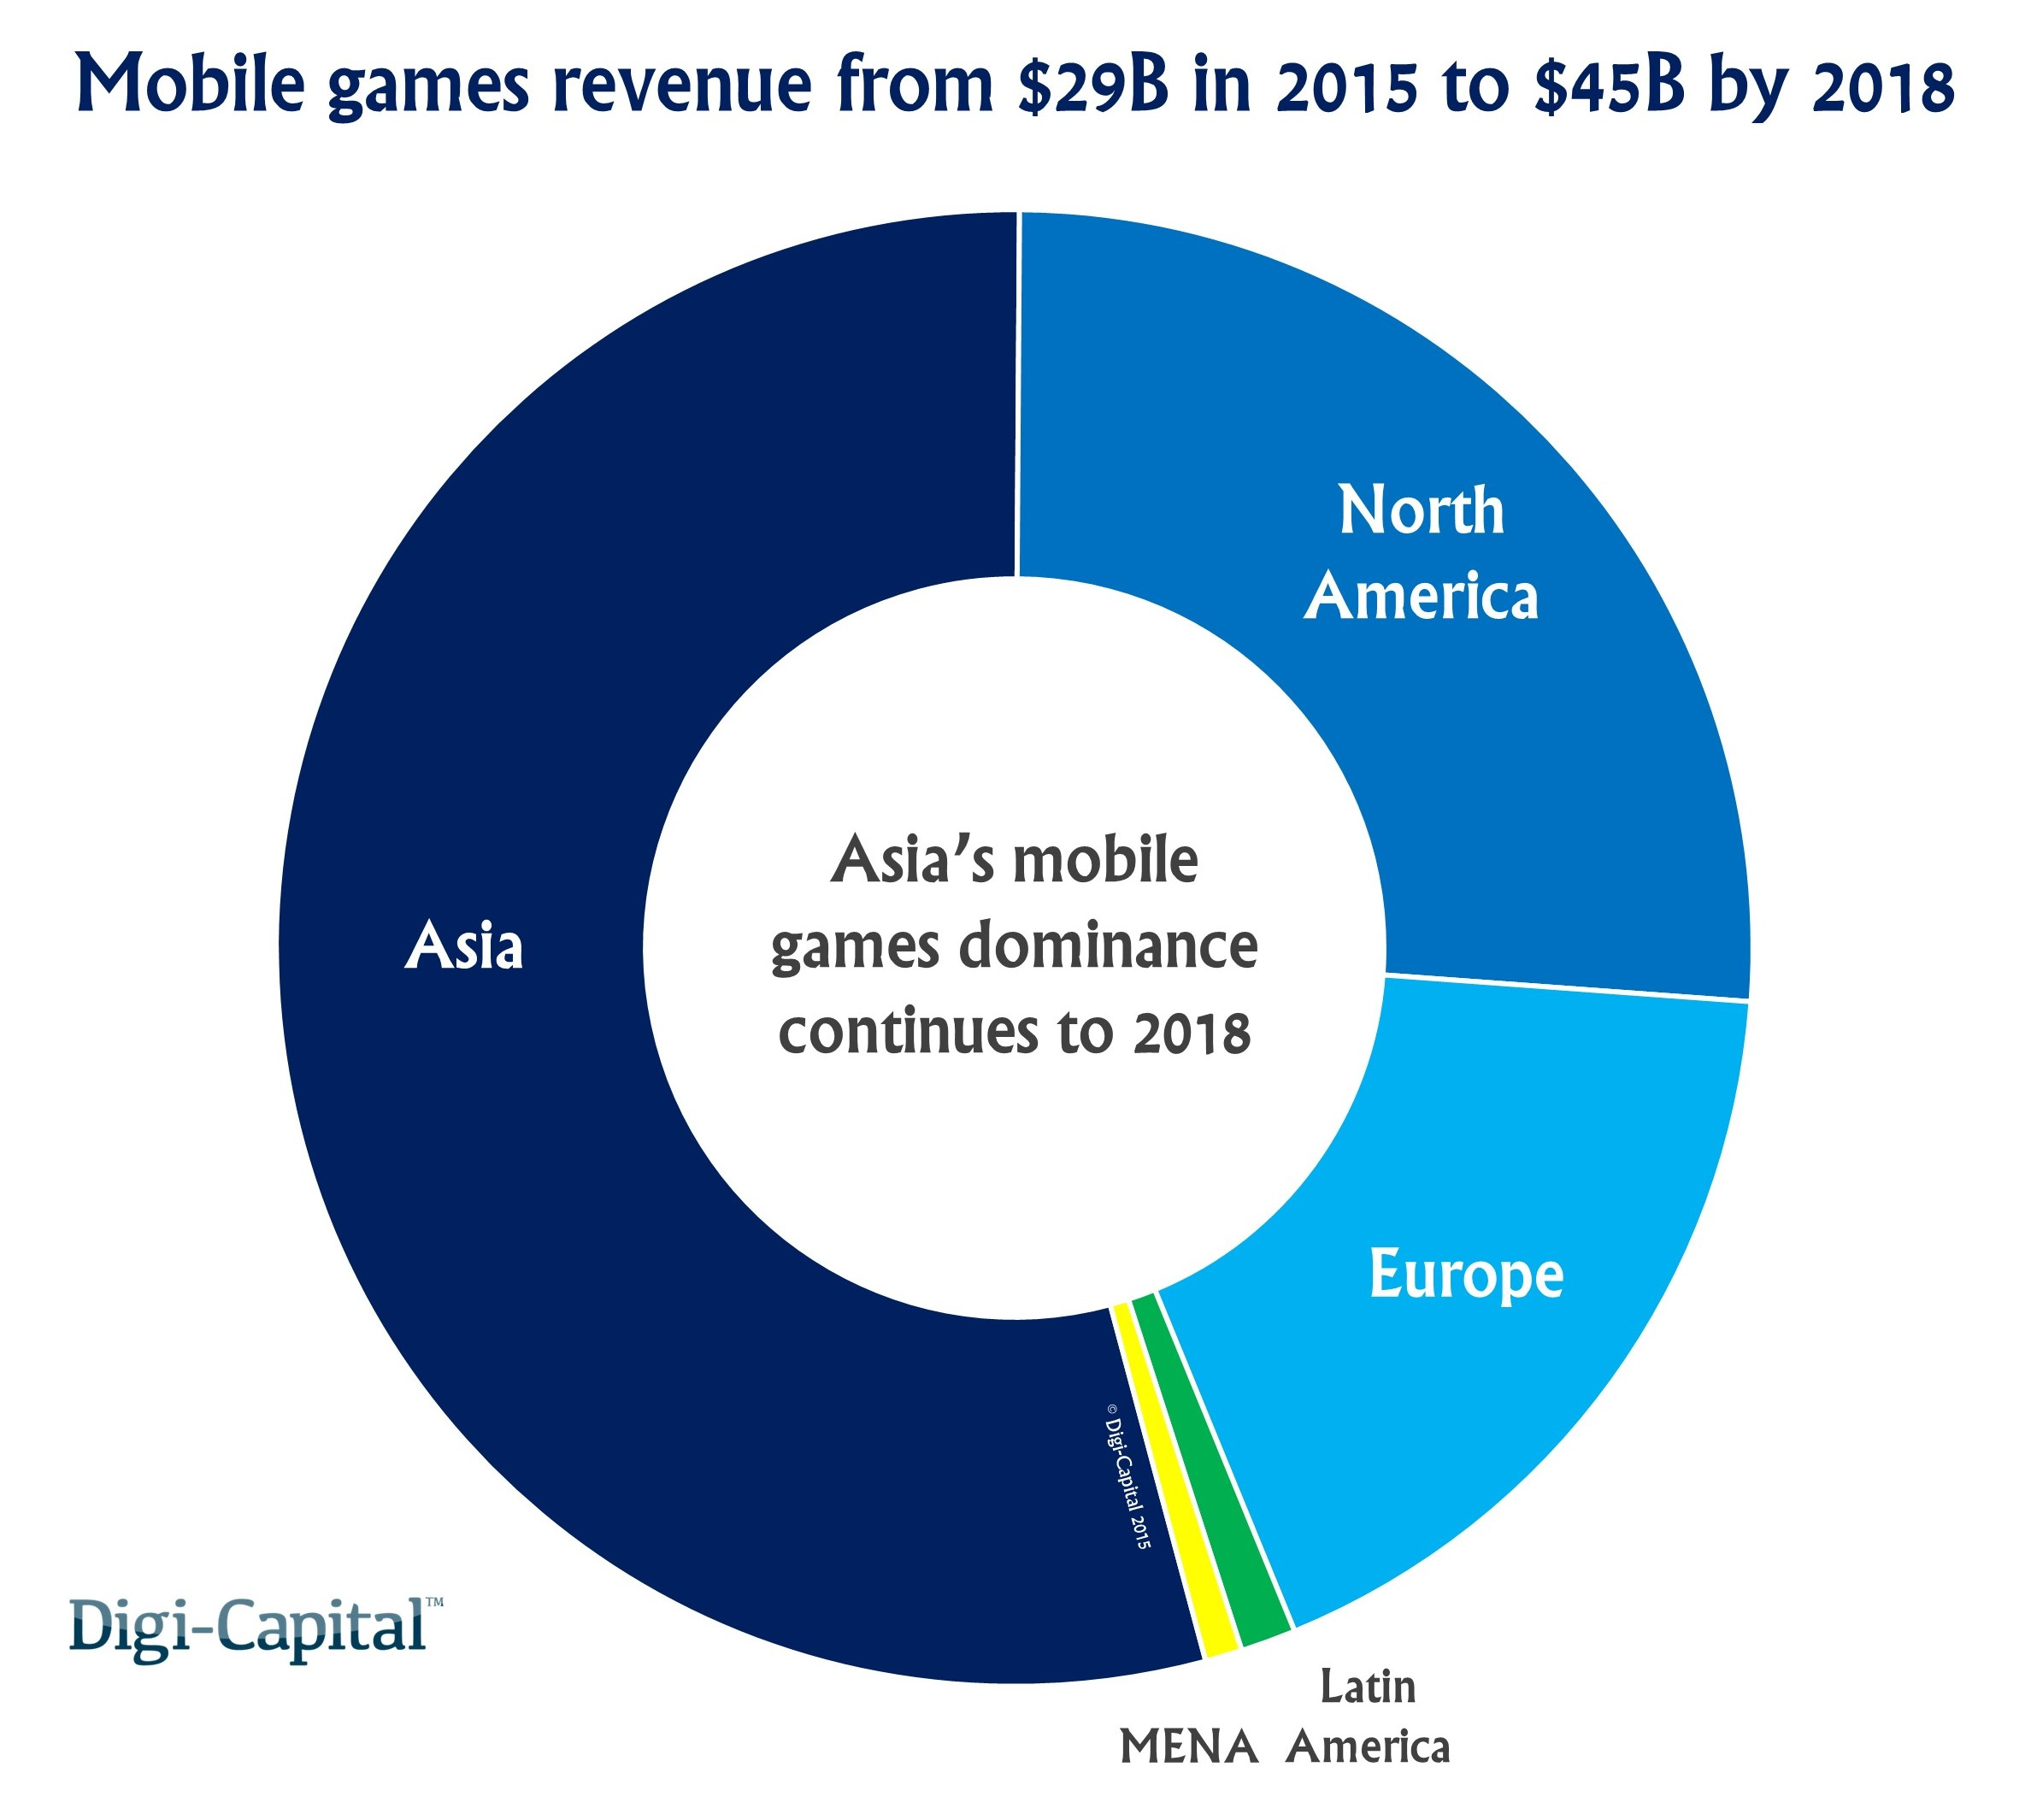 Mobile-games-region-revenue-forecast